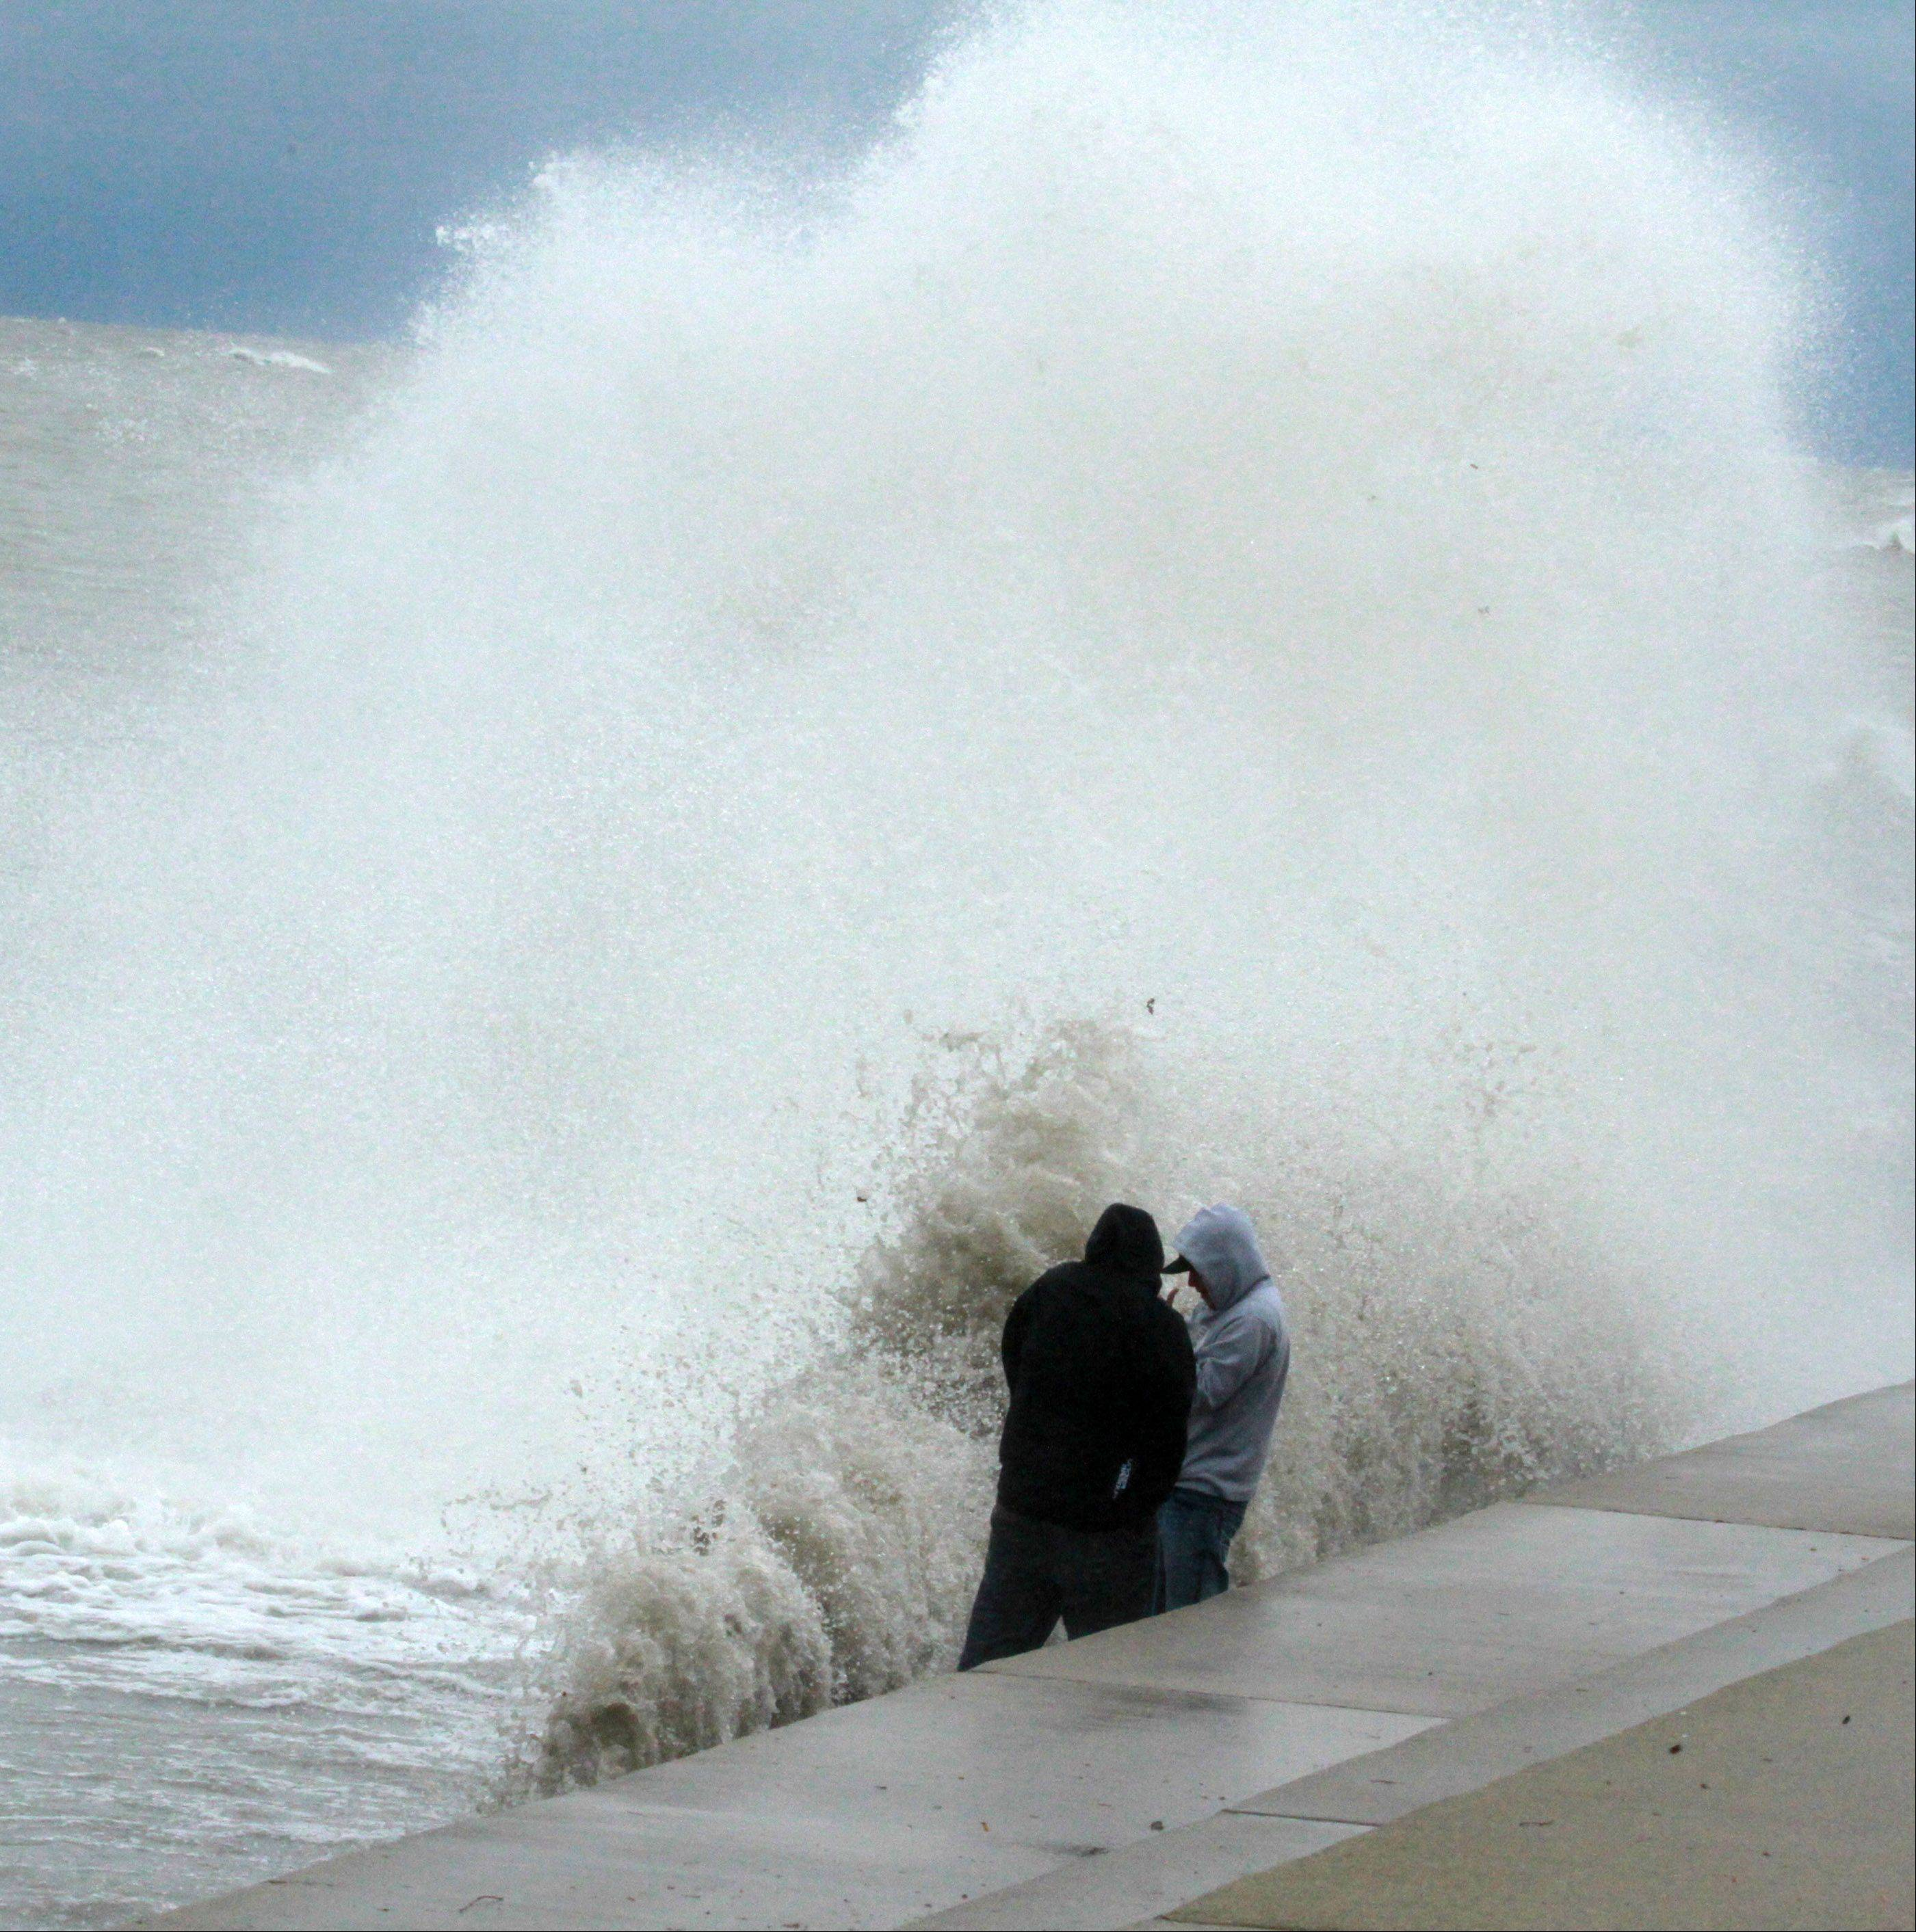 Mitch Mayle of North Riverside and Joe Krejci of La Grange Park are overtaken by a giant wave as they take pictures near Sydney R. Marovitz Golf Course on Lake Michigan shoreline in Chicago on Tuesday, October 30.